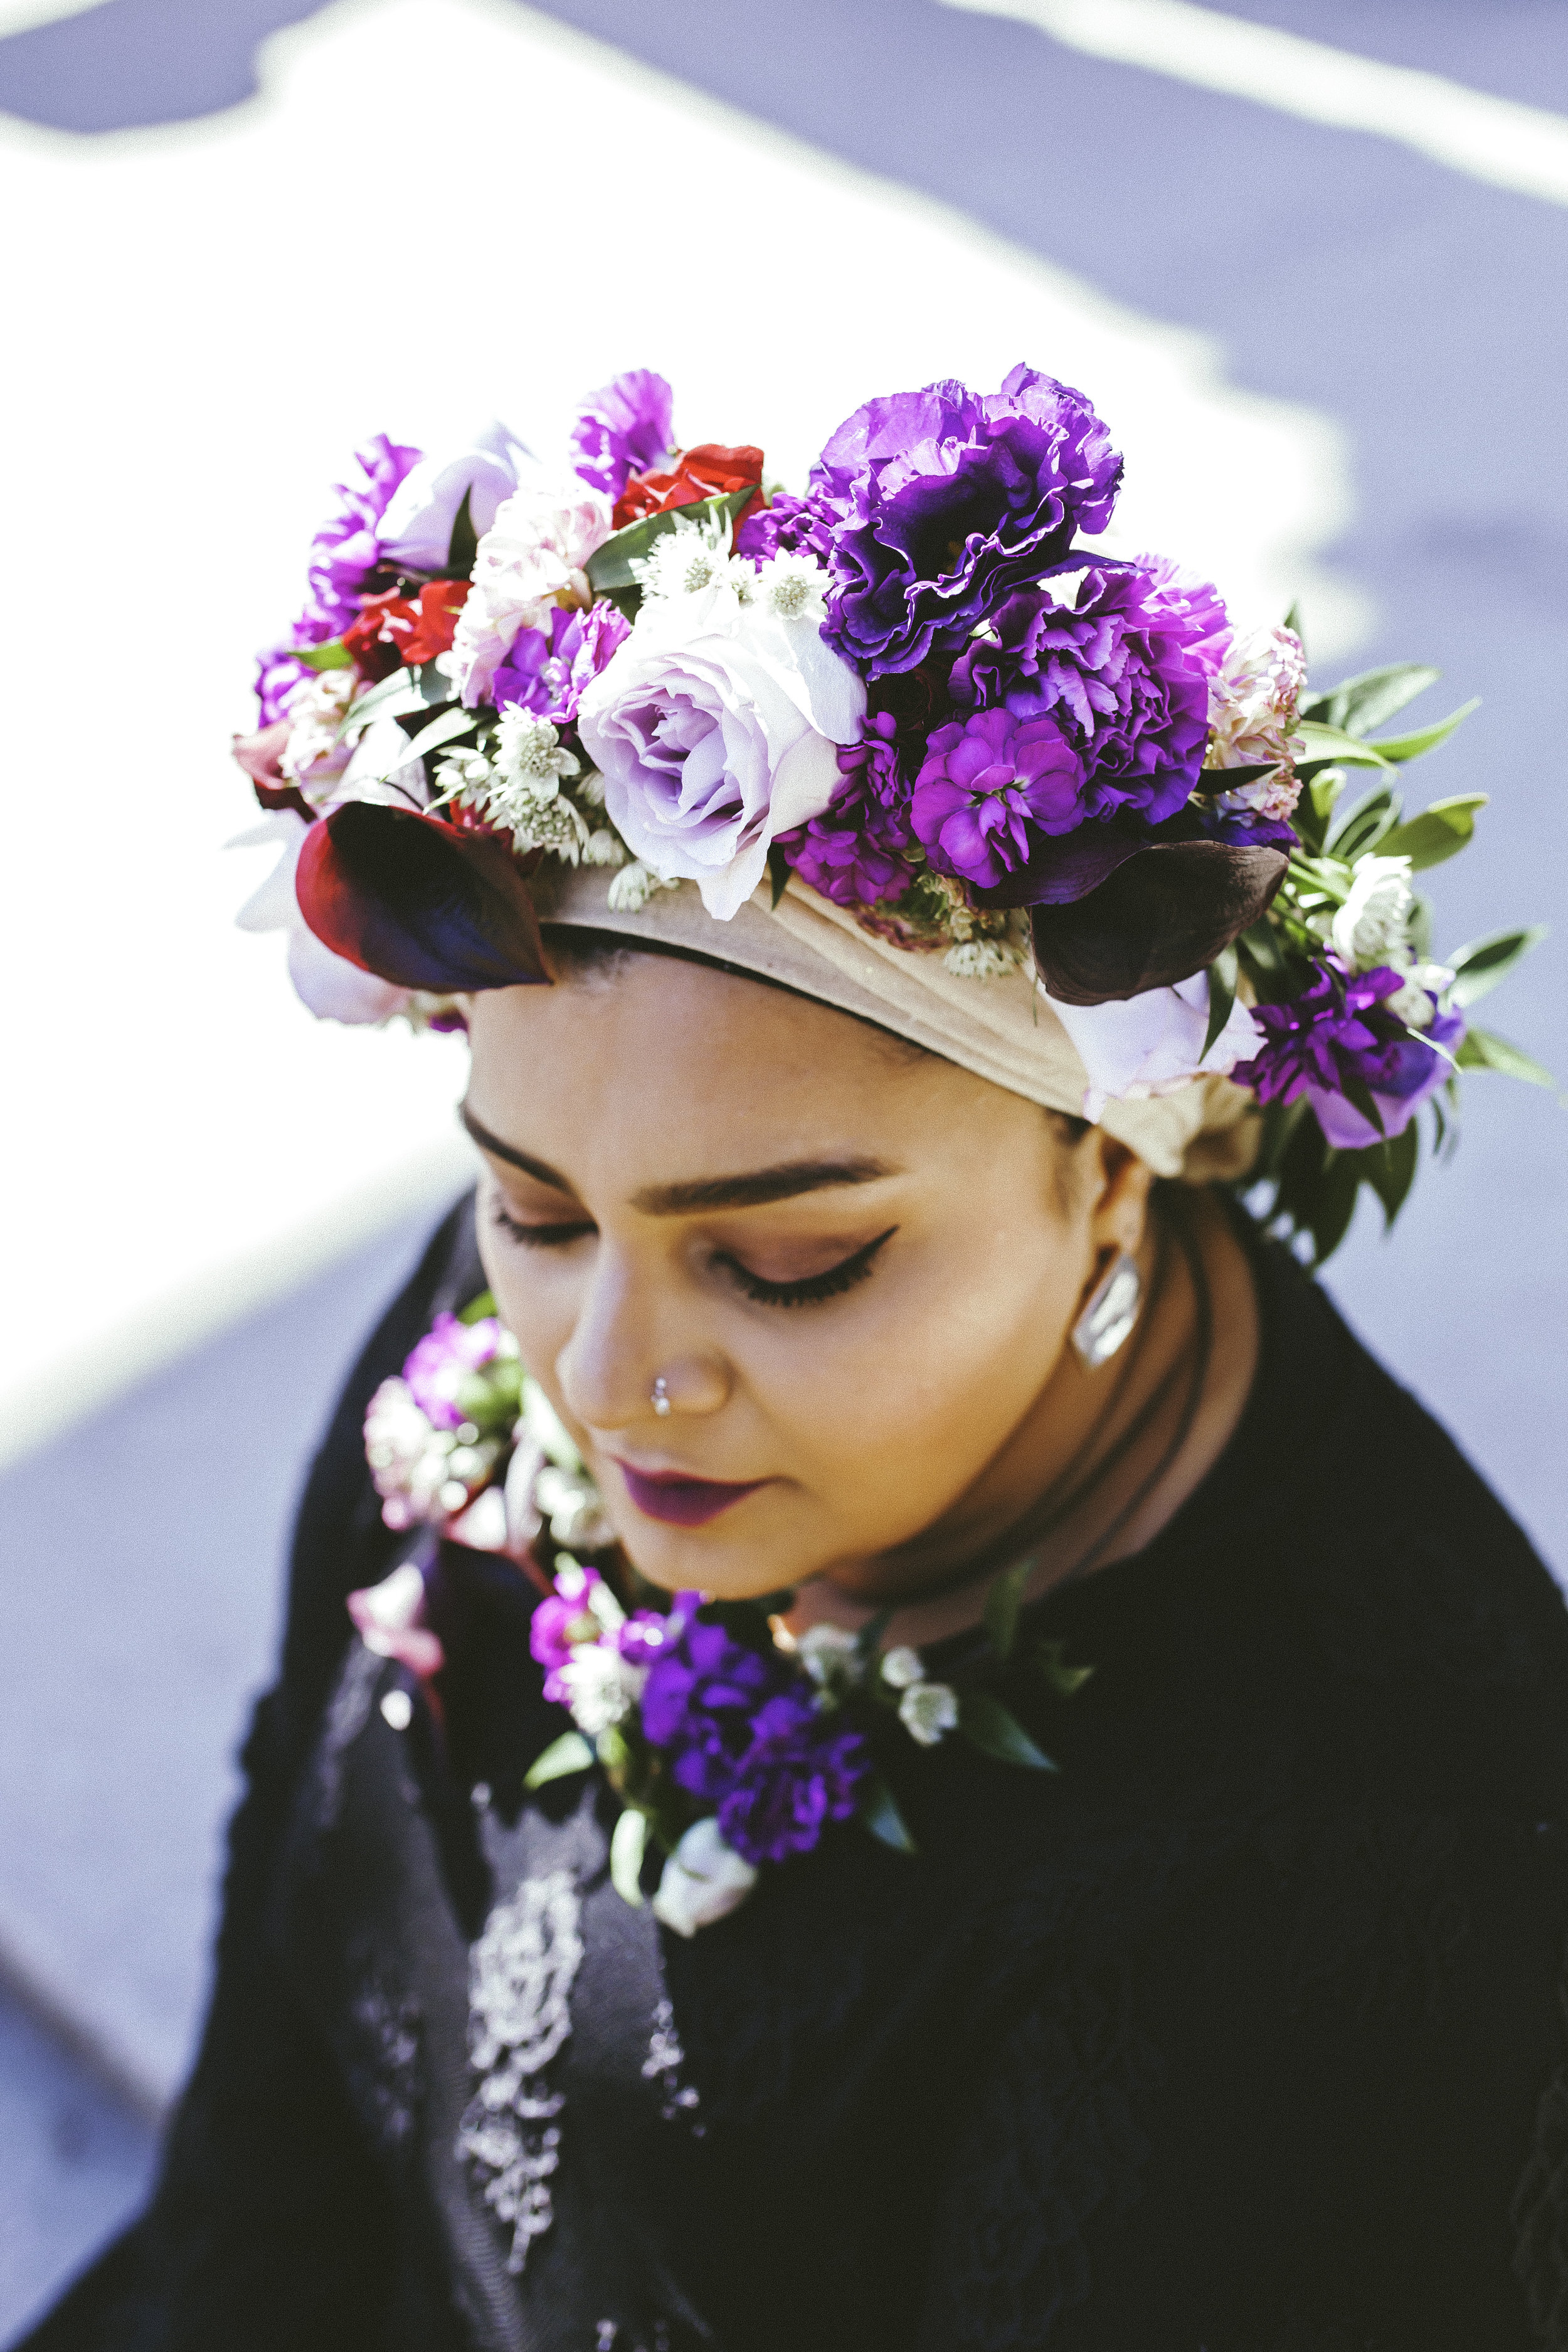 Toronto Photographer Purple Floral Crown Flower Crown Inspiration Canada Photography Portraits Photograph  photo shoot headshot color florist